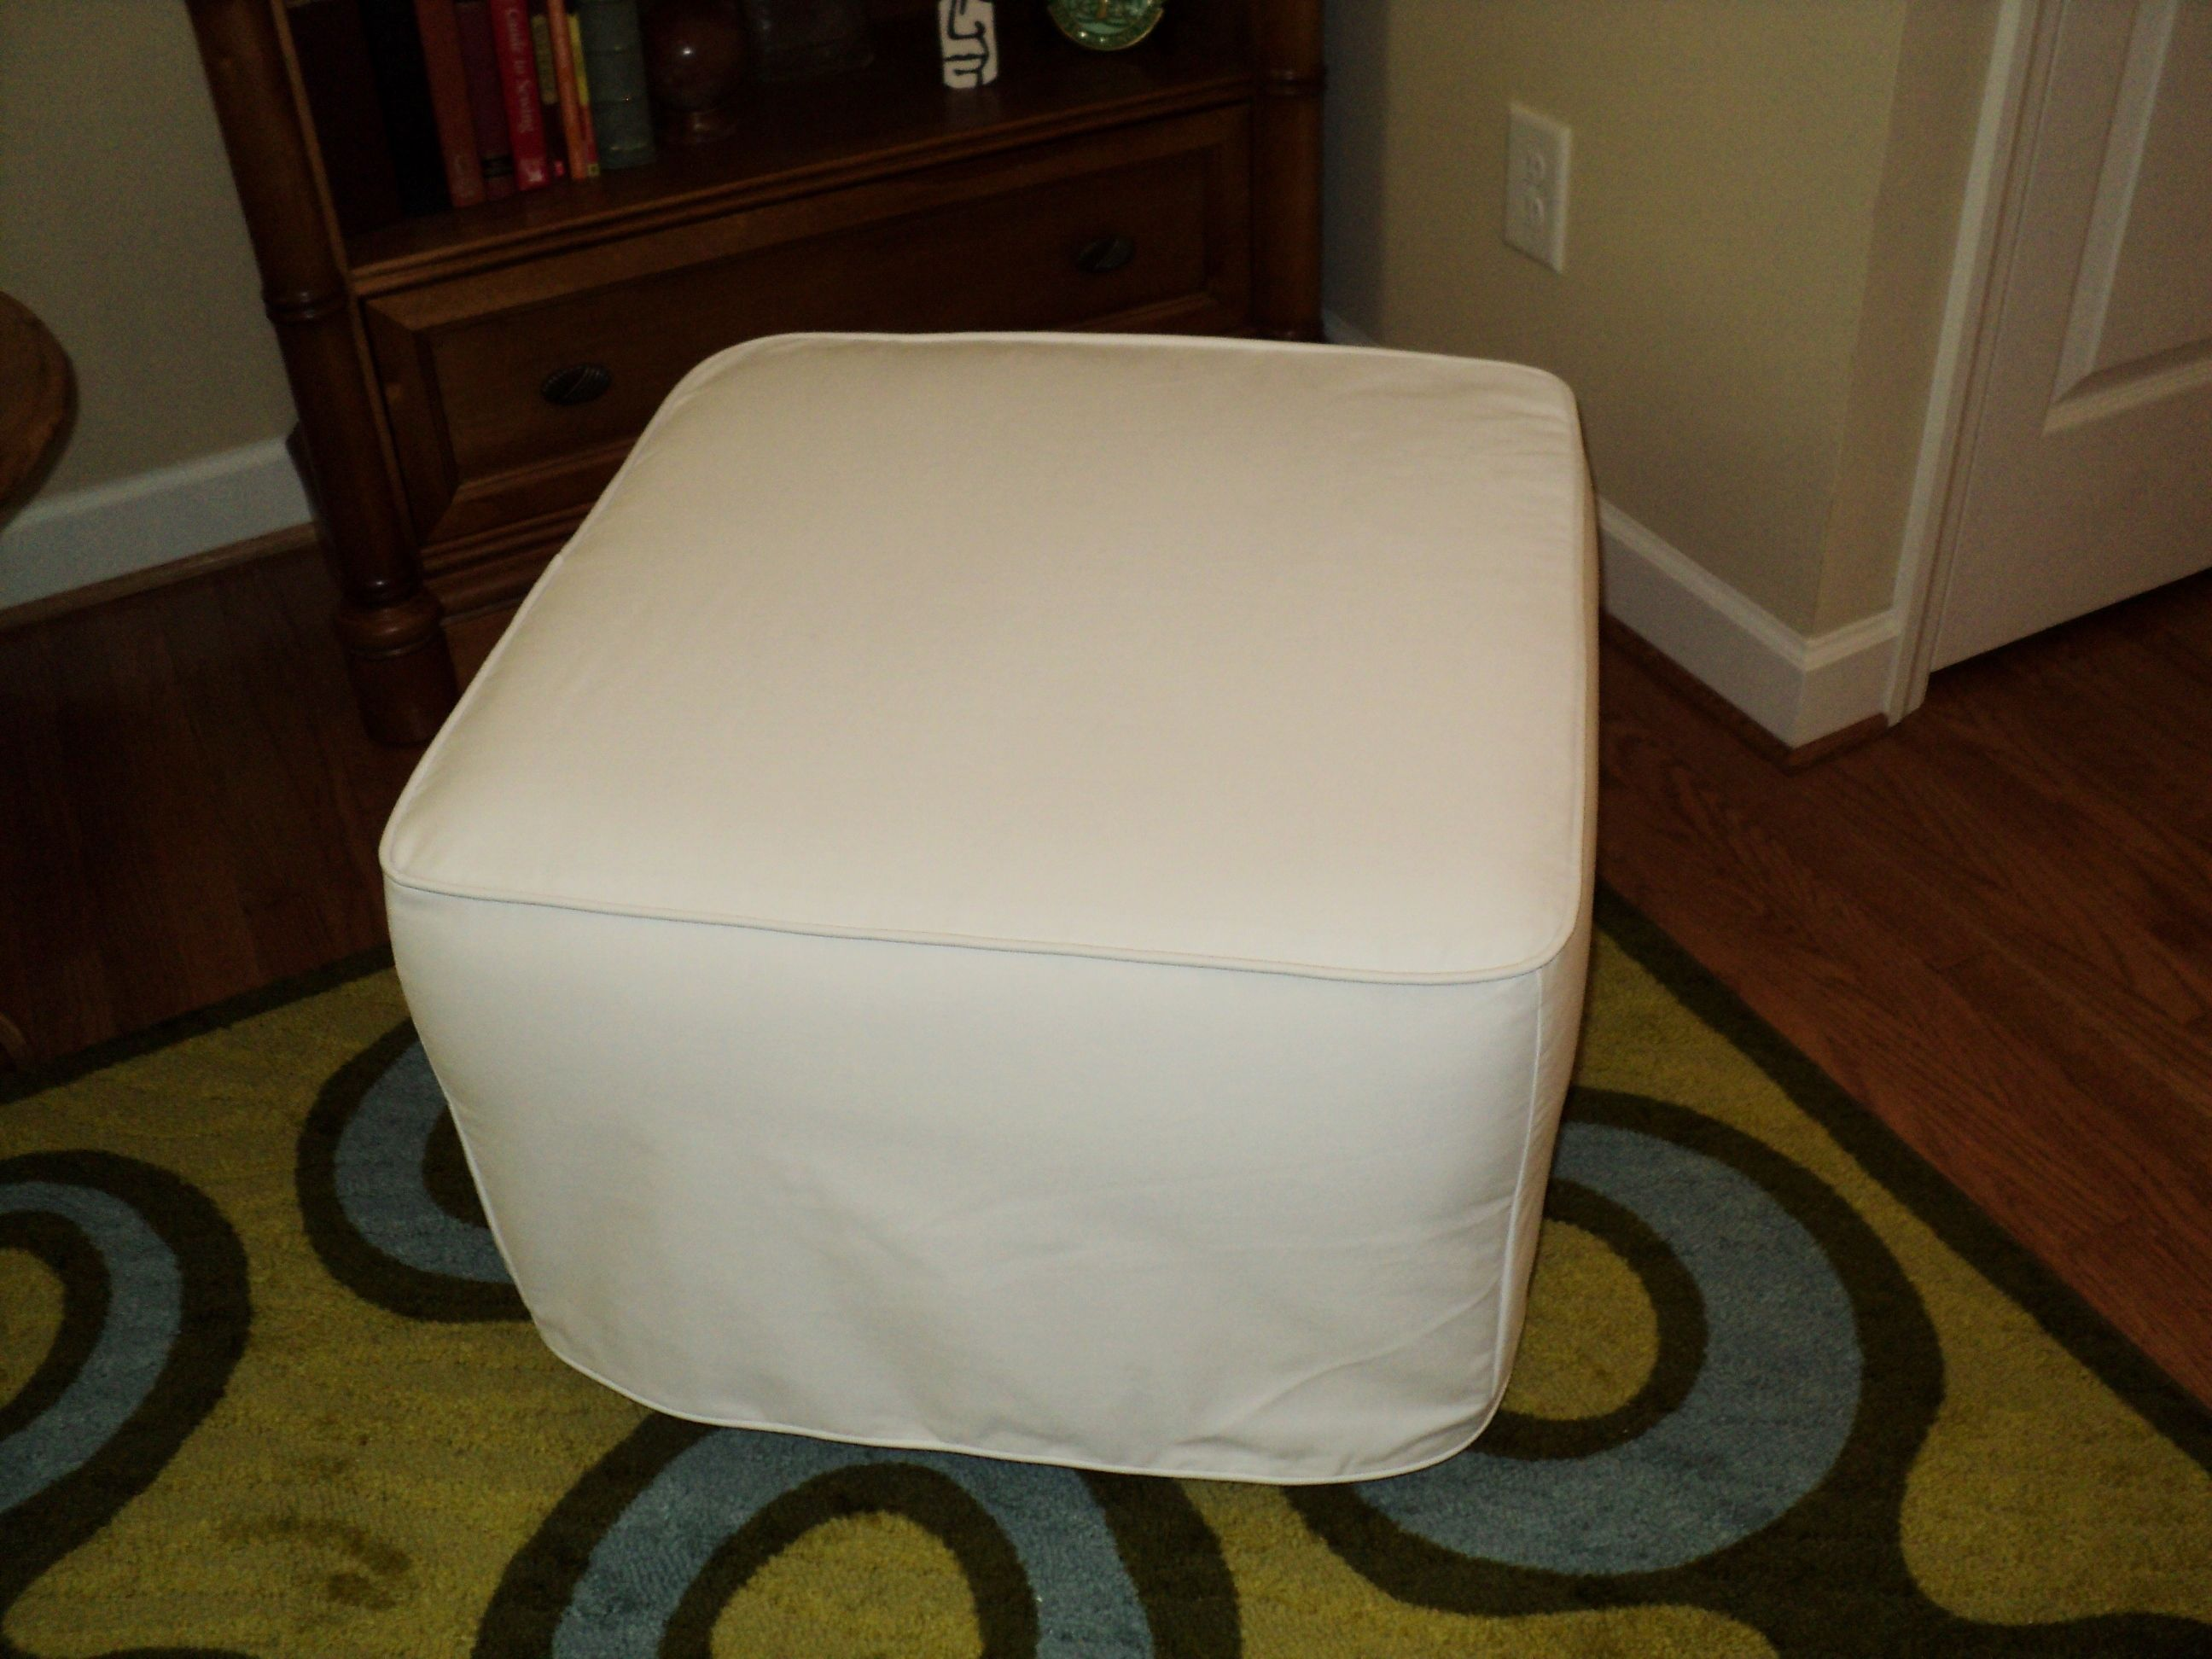 This is Pottery Barn s Discontinued Dream Lullaby ottoman with a